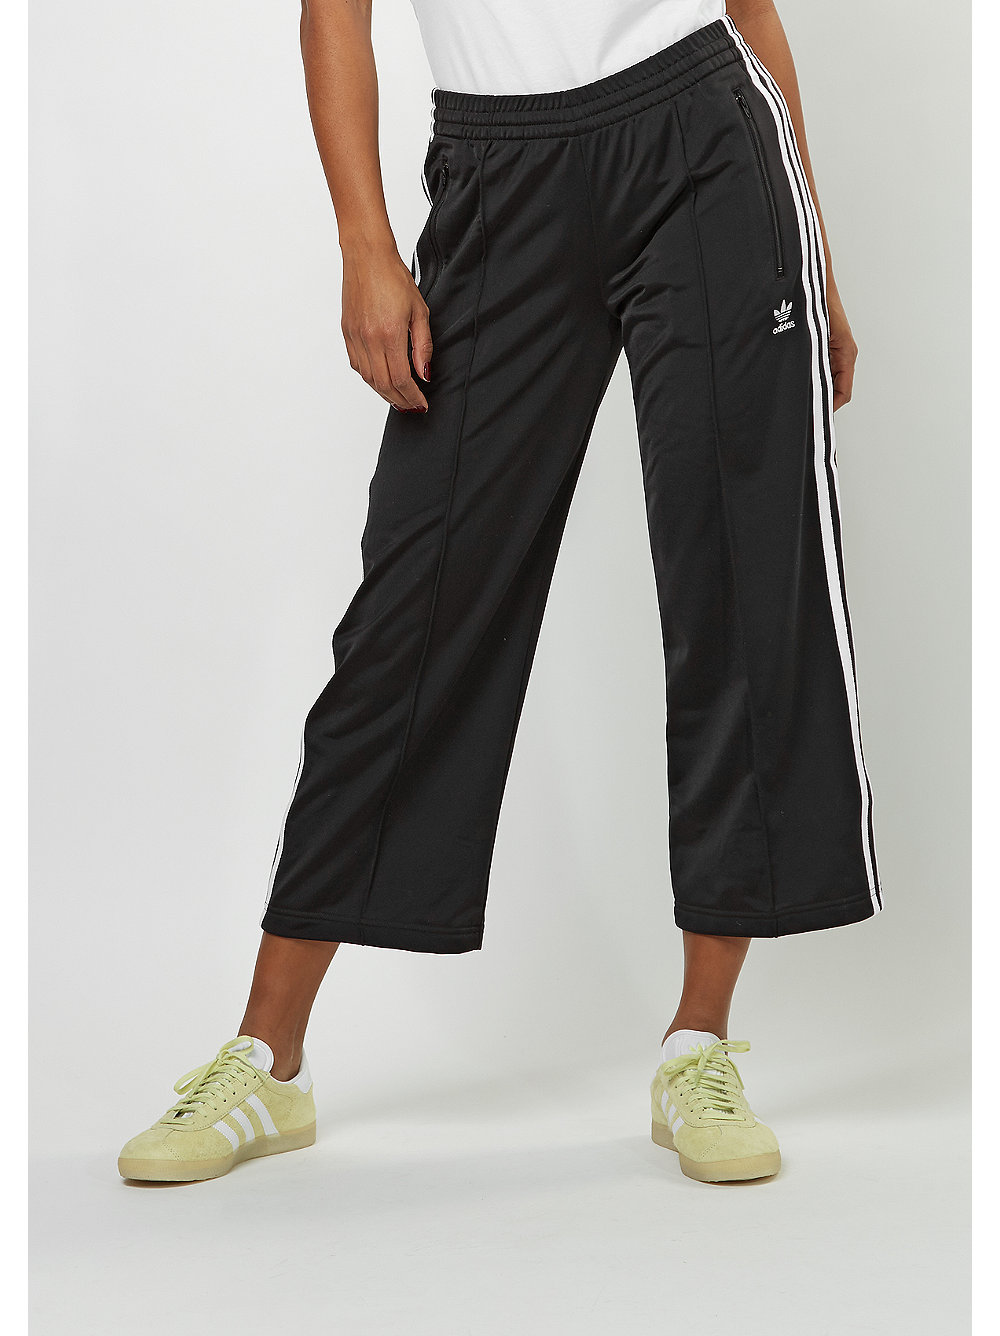 adidas 7-8 Sailor Pant black